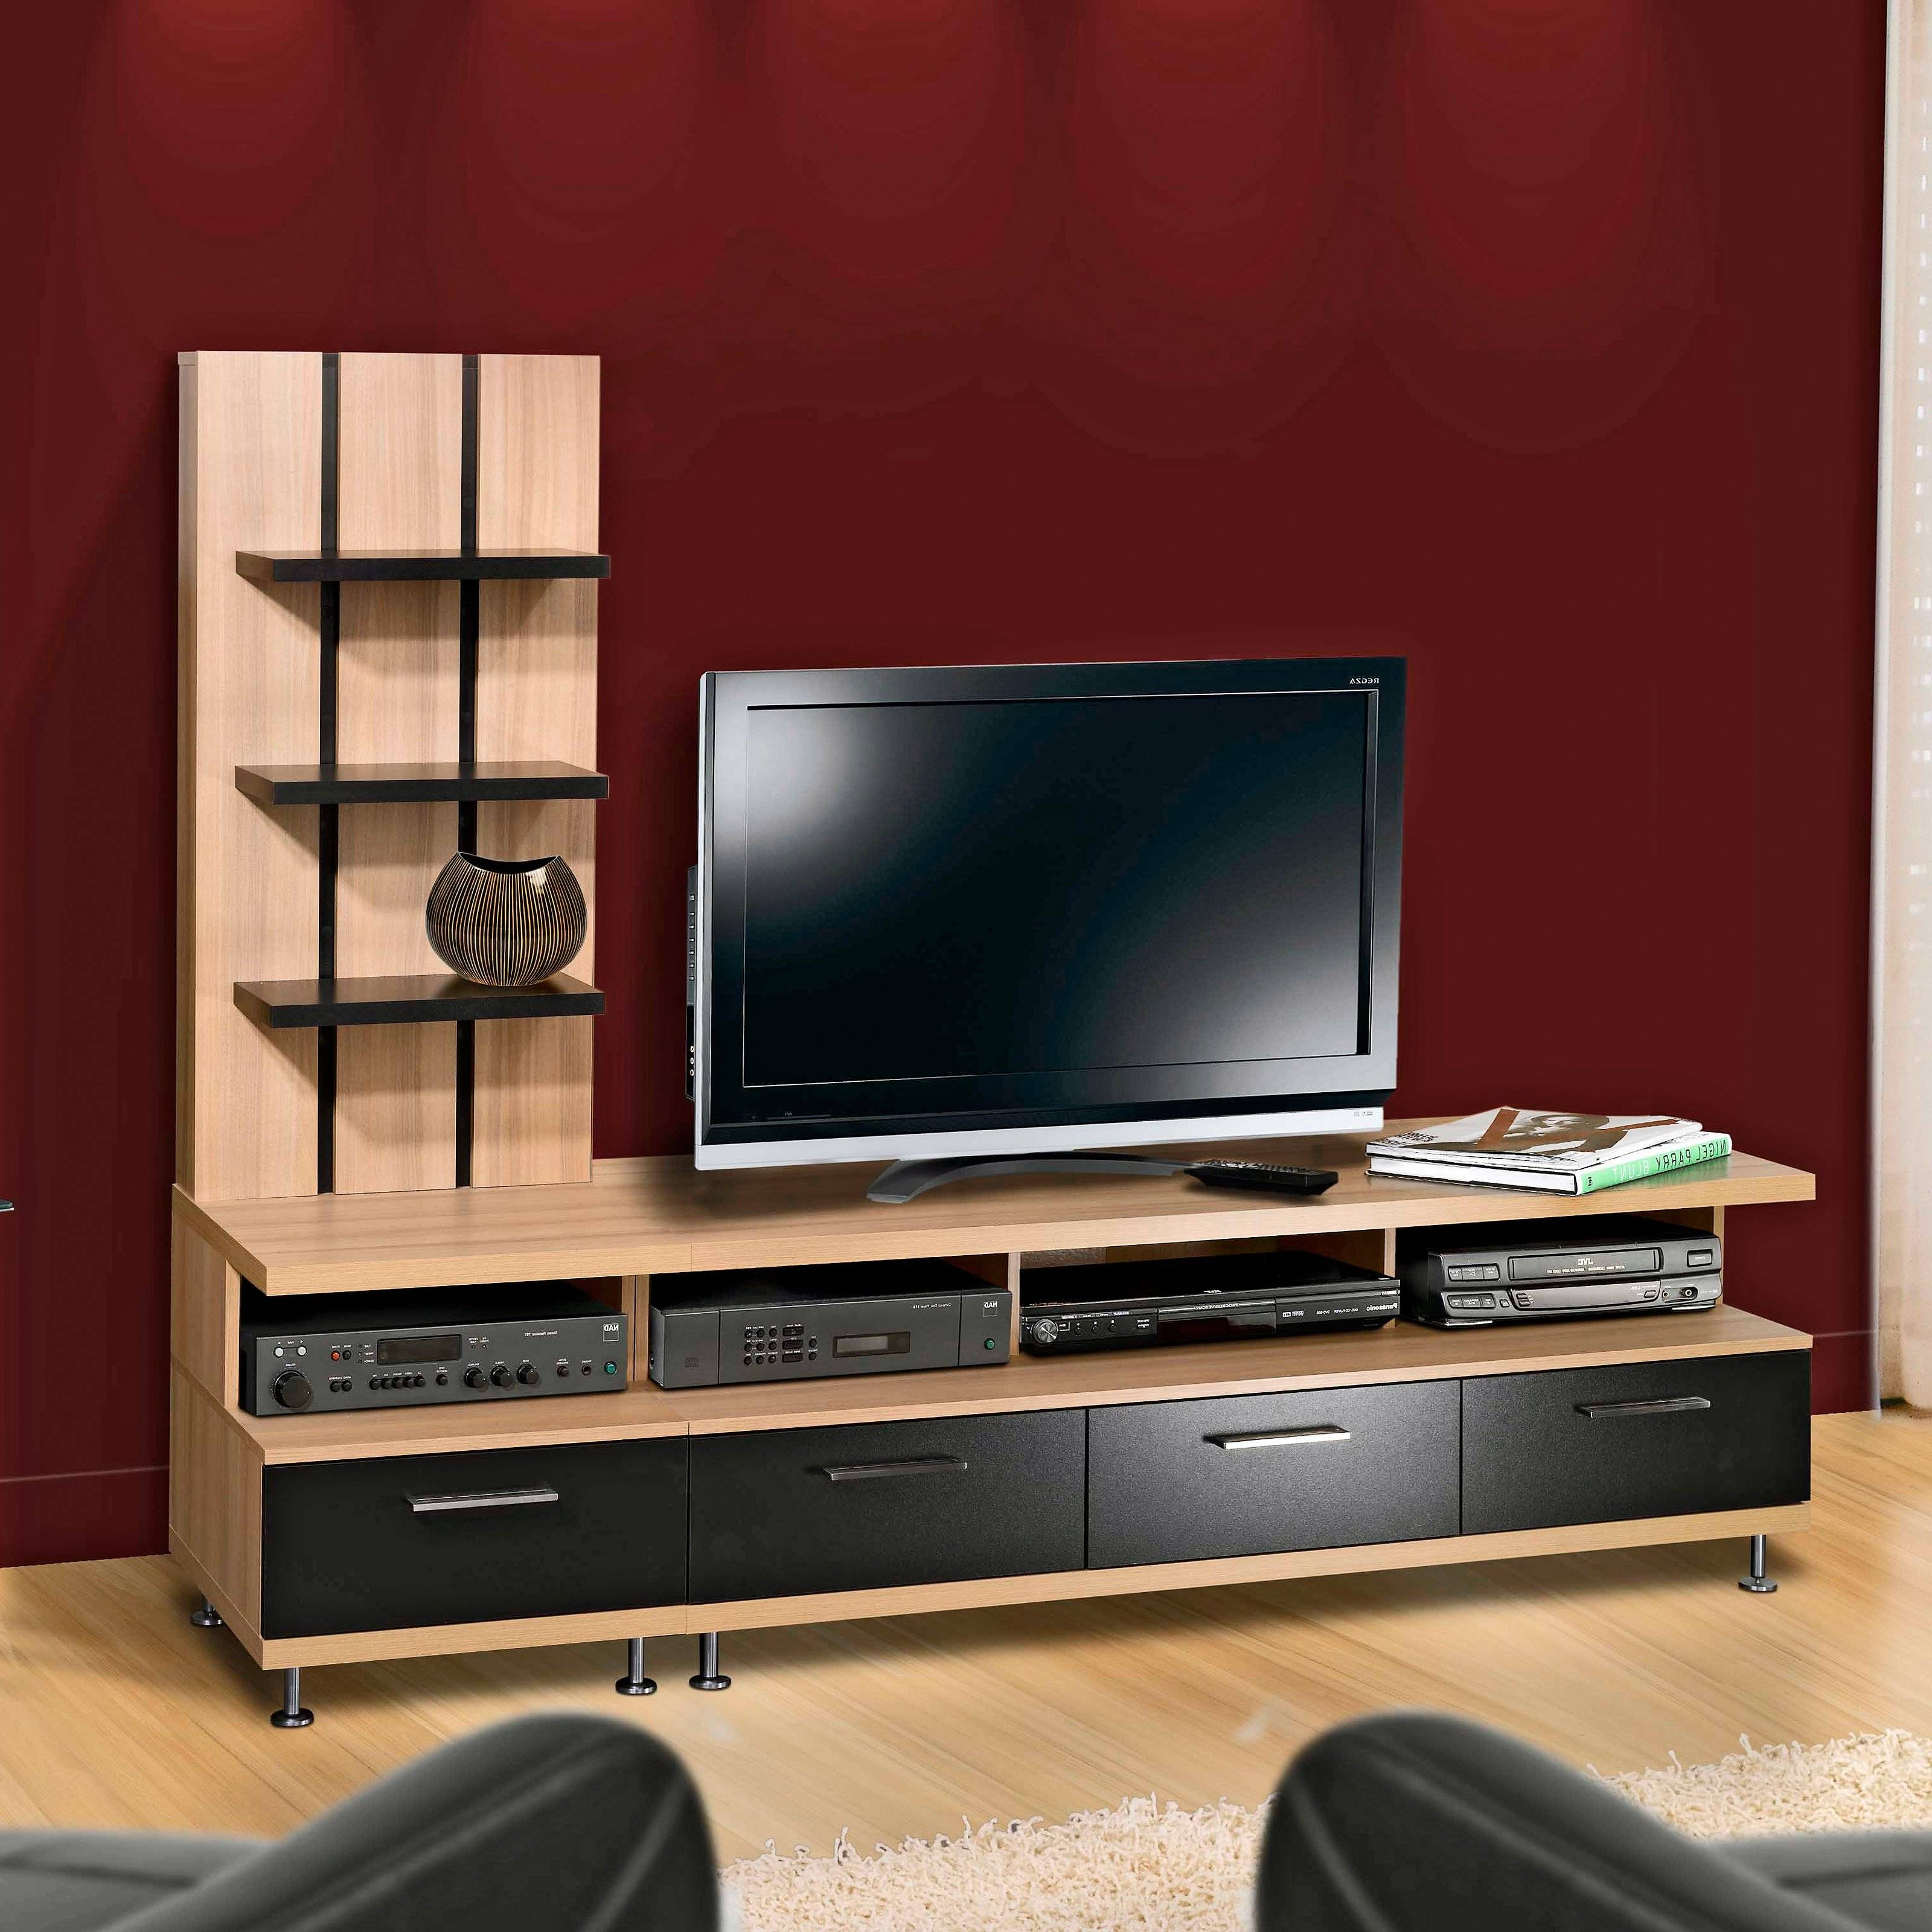 Short Wooden And Metal Tv Stand Entertainment Center With Drawers With Regard To Black And Red Tv Stands (View 15 of 15)